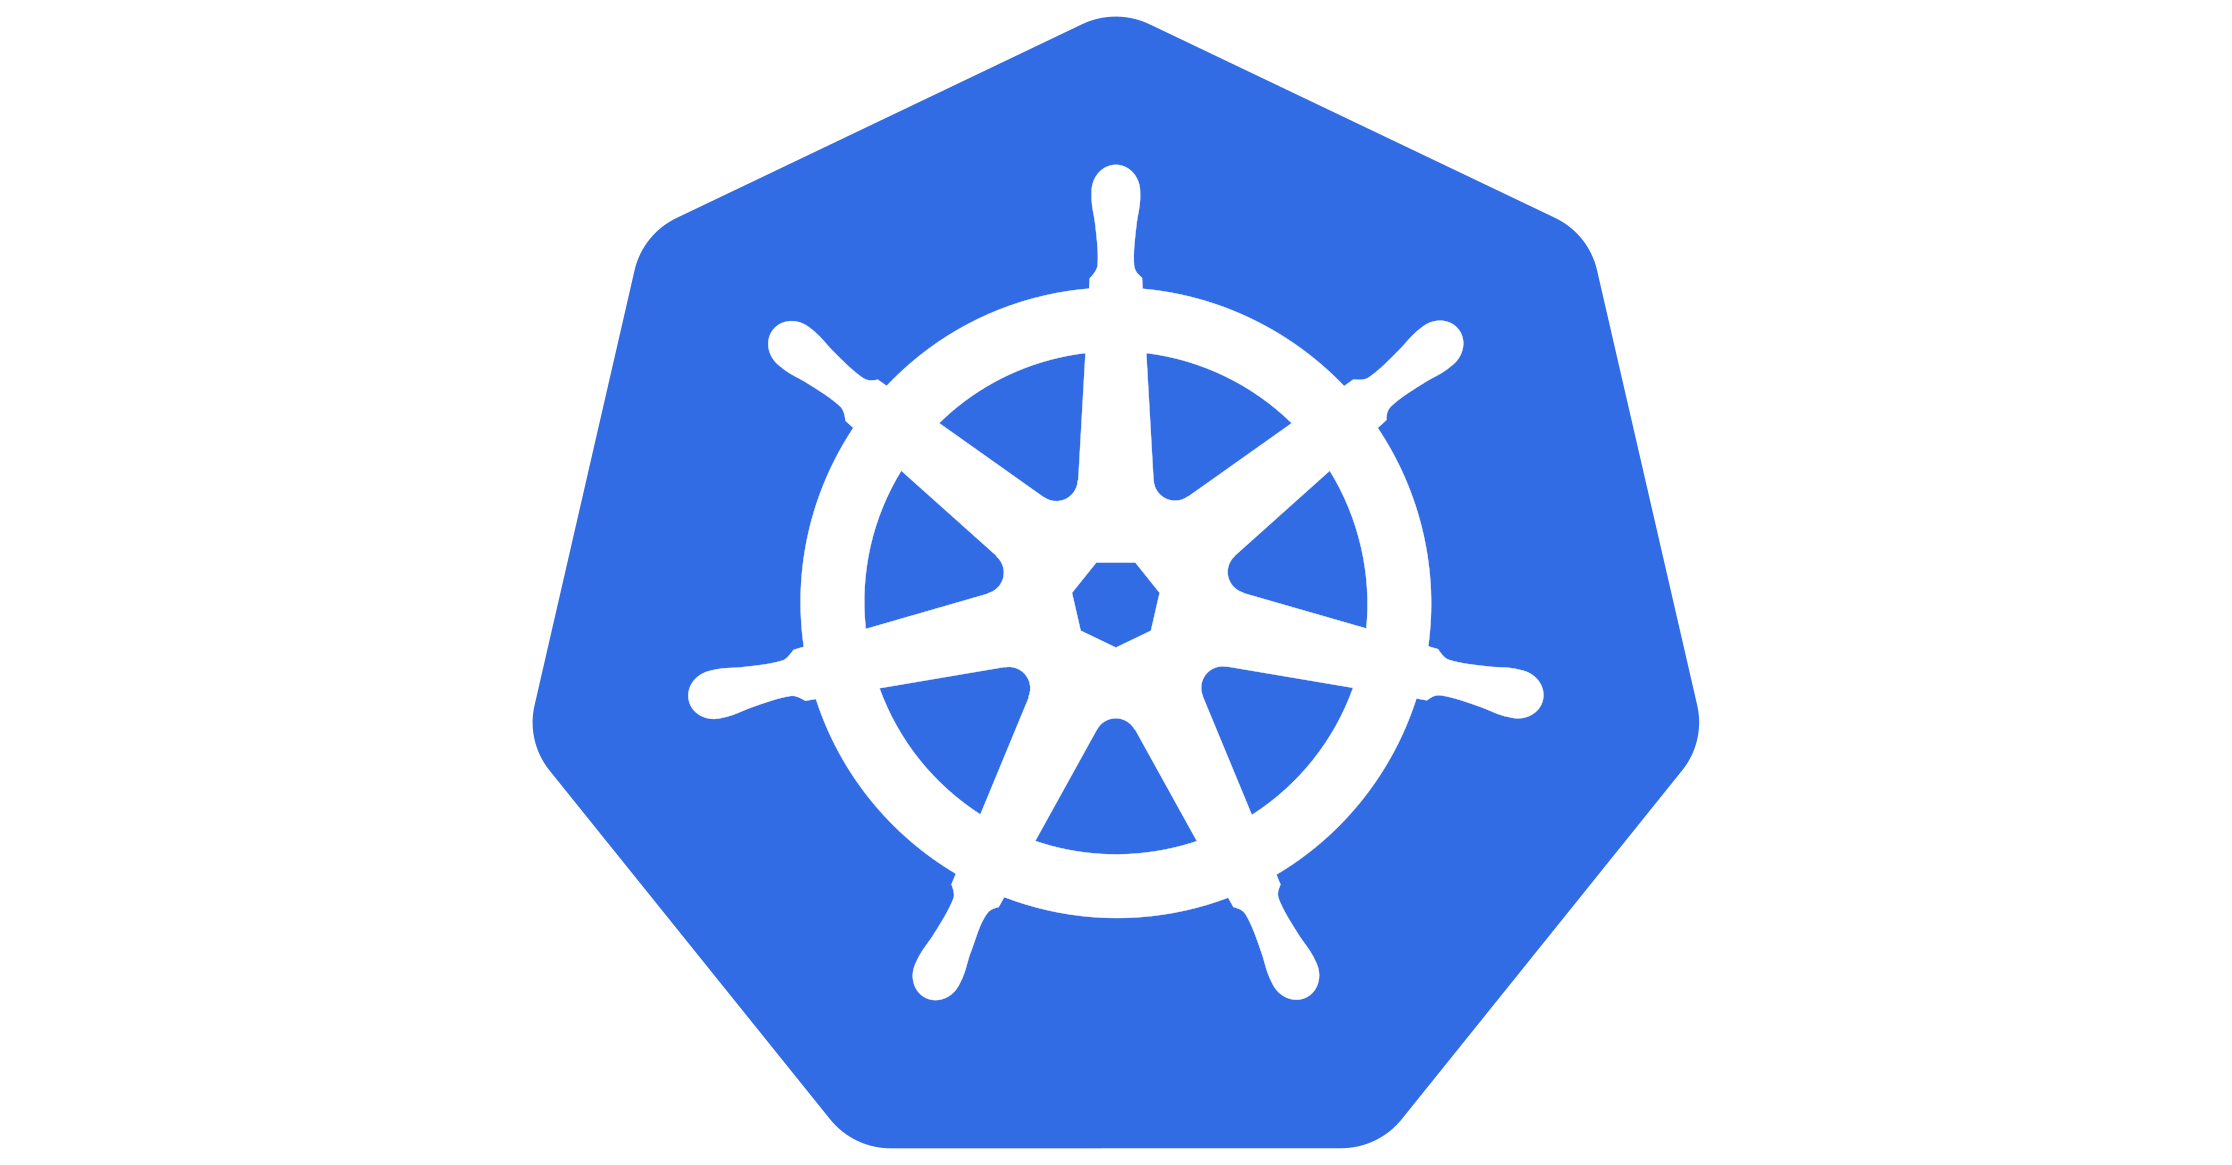 Using ML and logs to catch problems in a distributed Kubernetes deployment